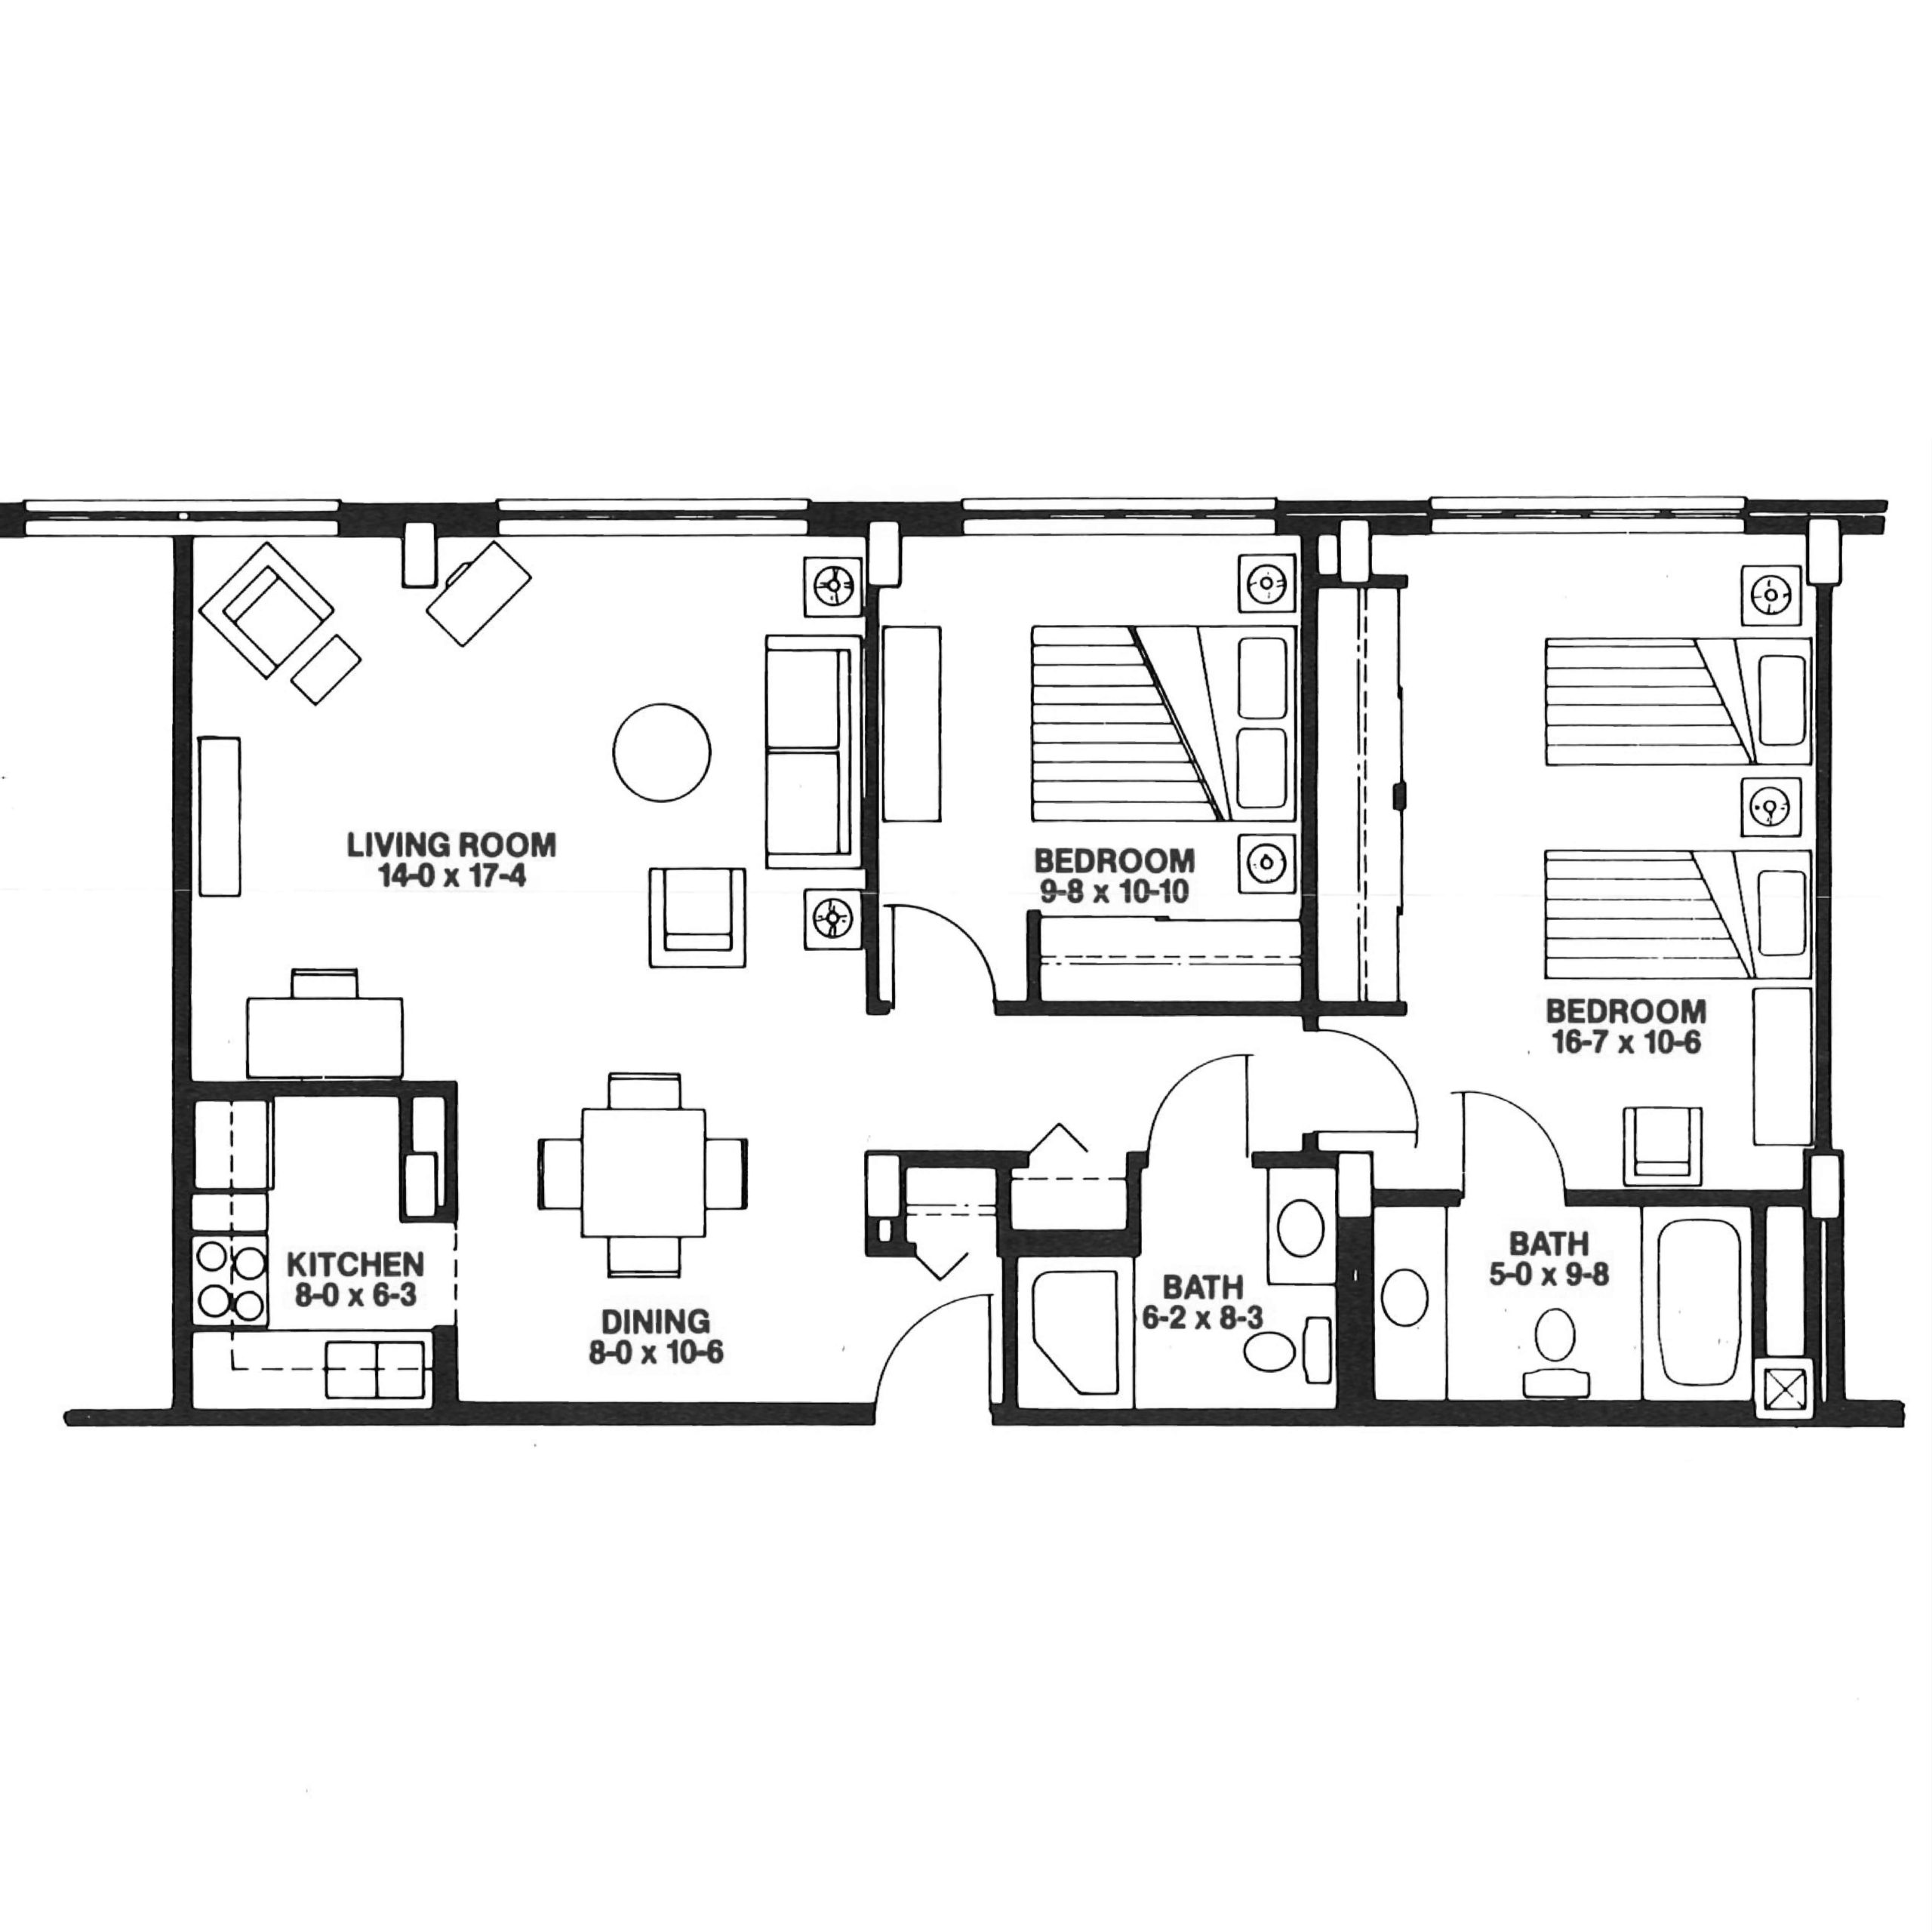 The Garvin floor plan blueprint